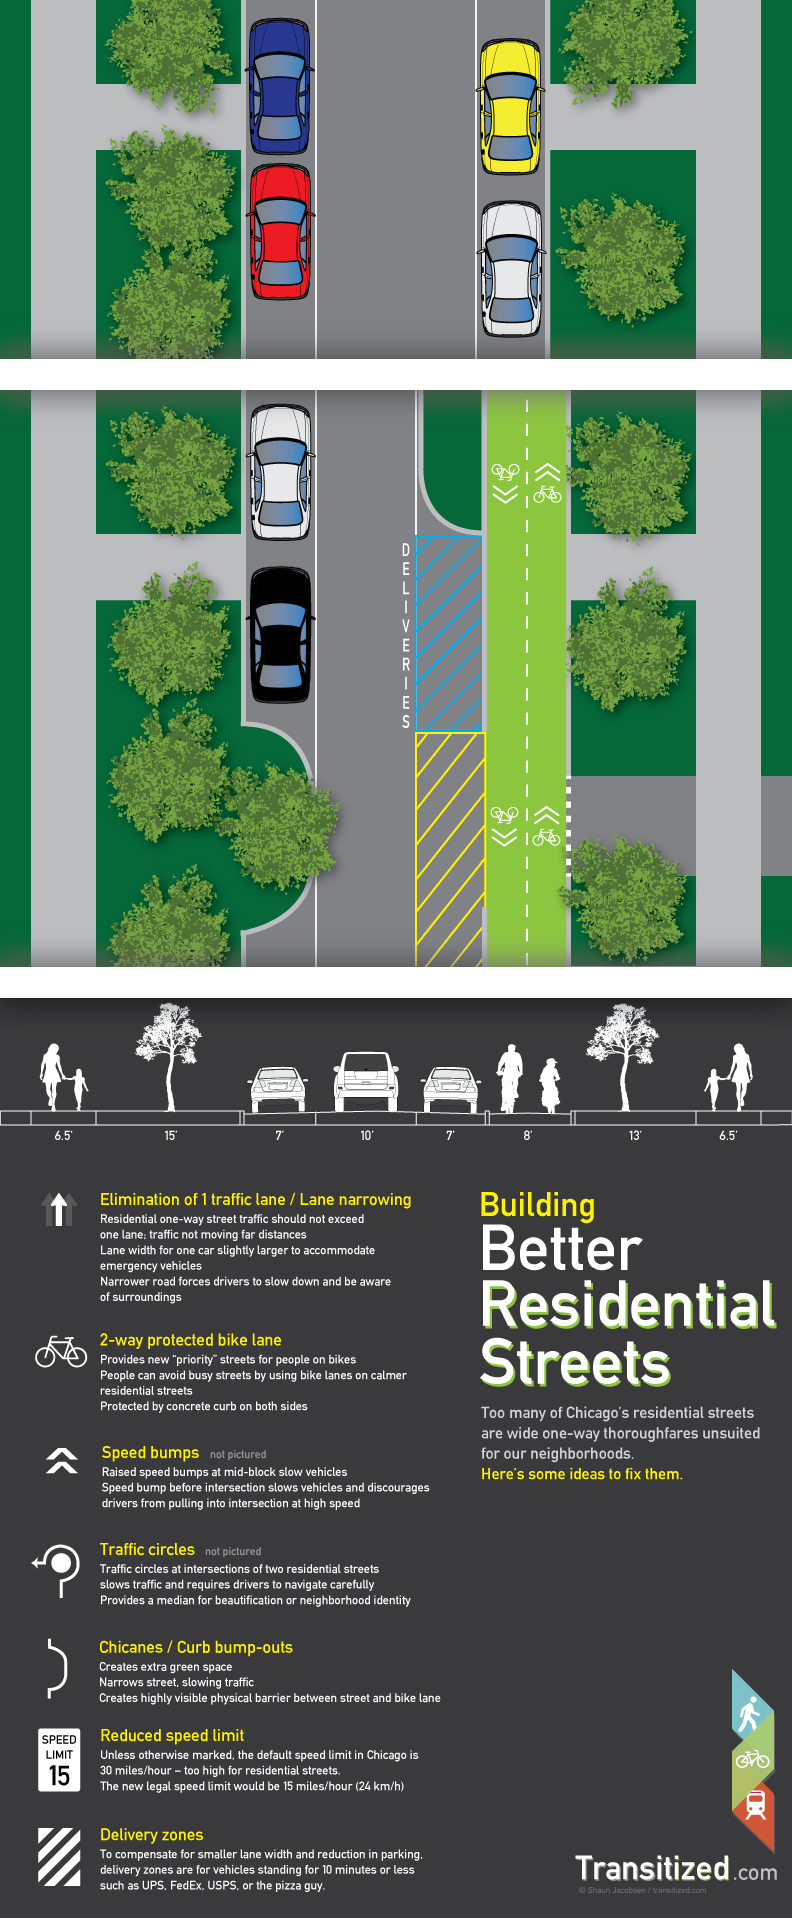 Better Residential Streets